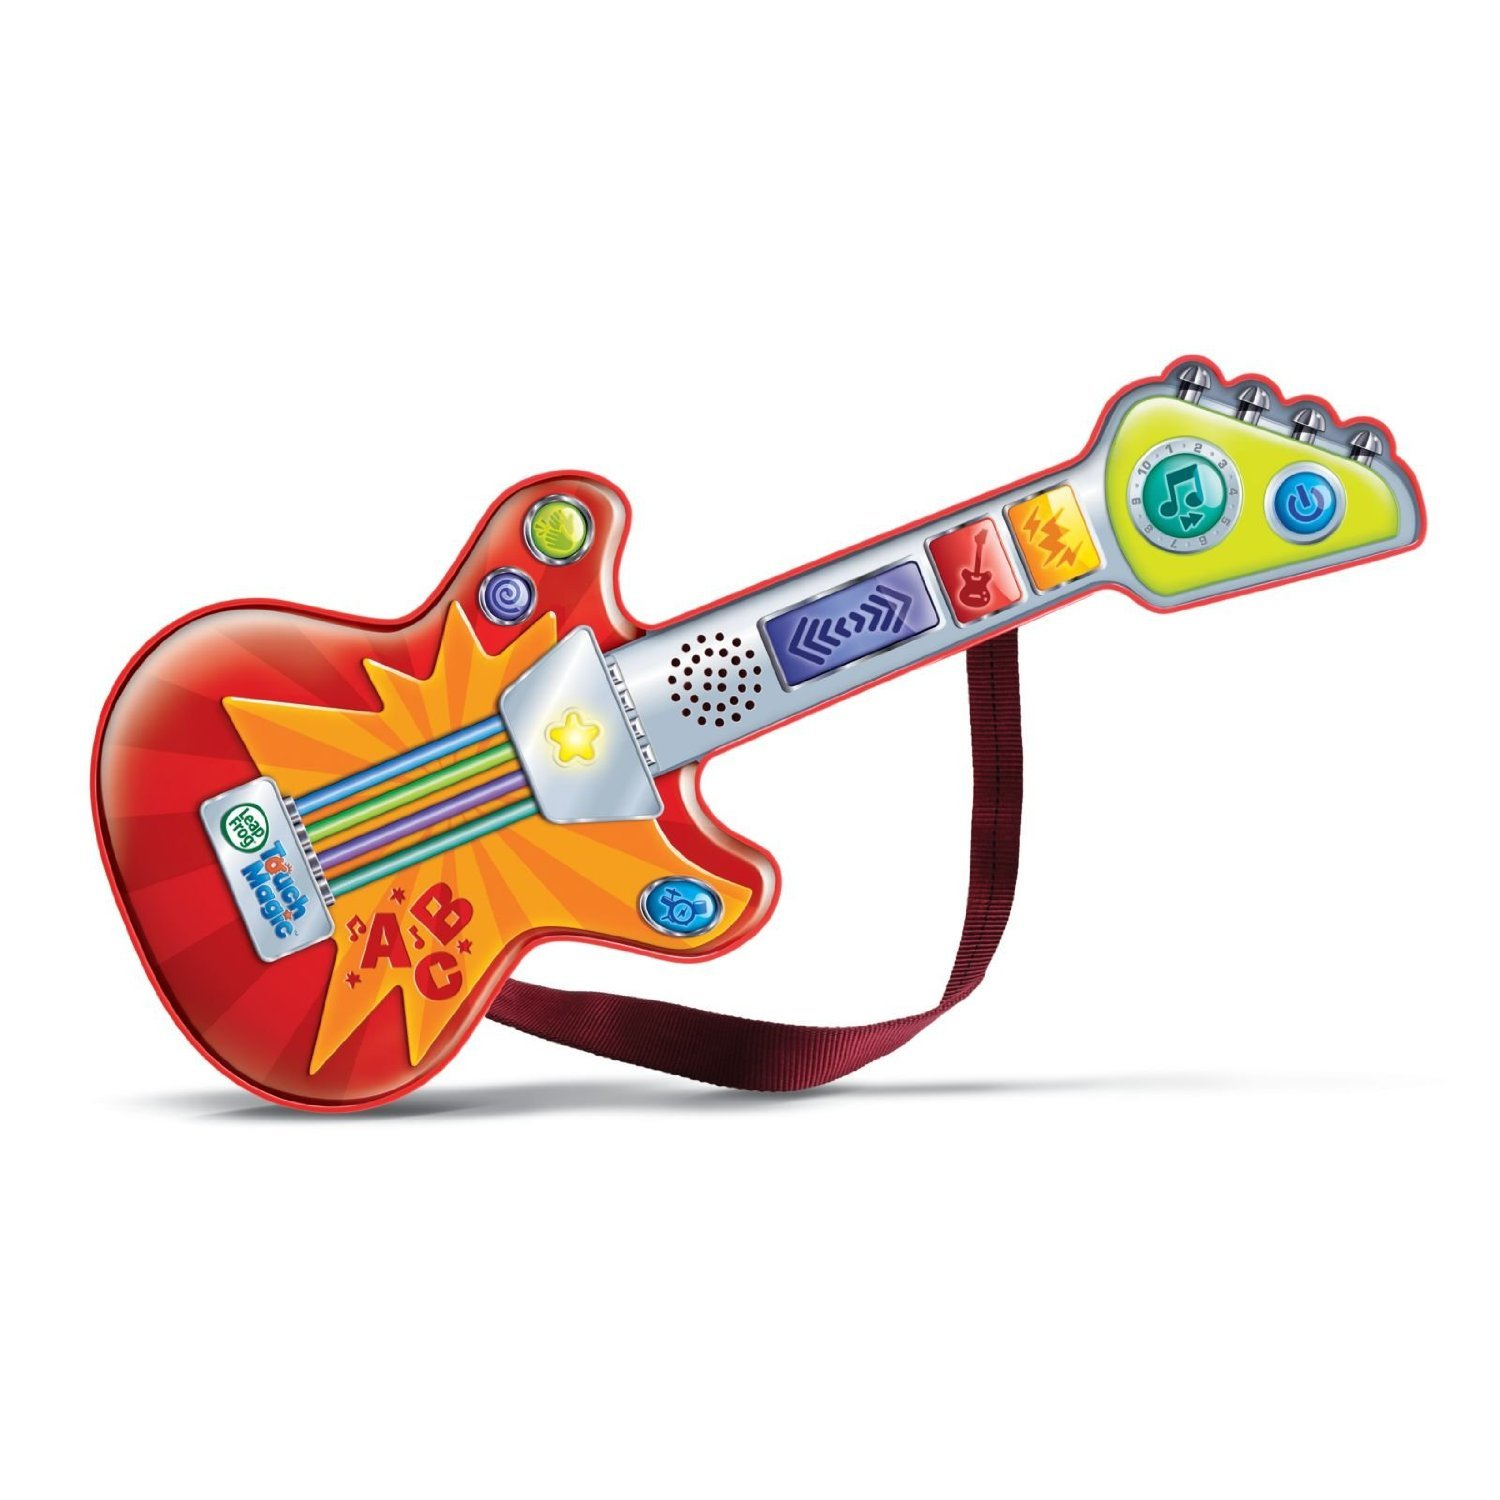 Amazon LeapFrog Touch Magic Rockin Guitar Toys & Games